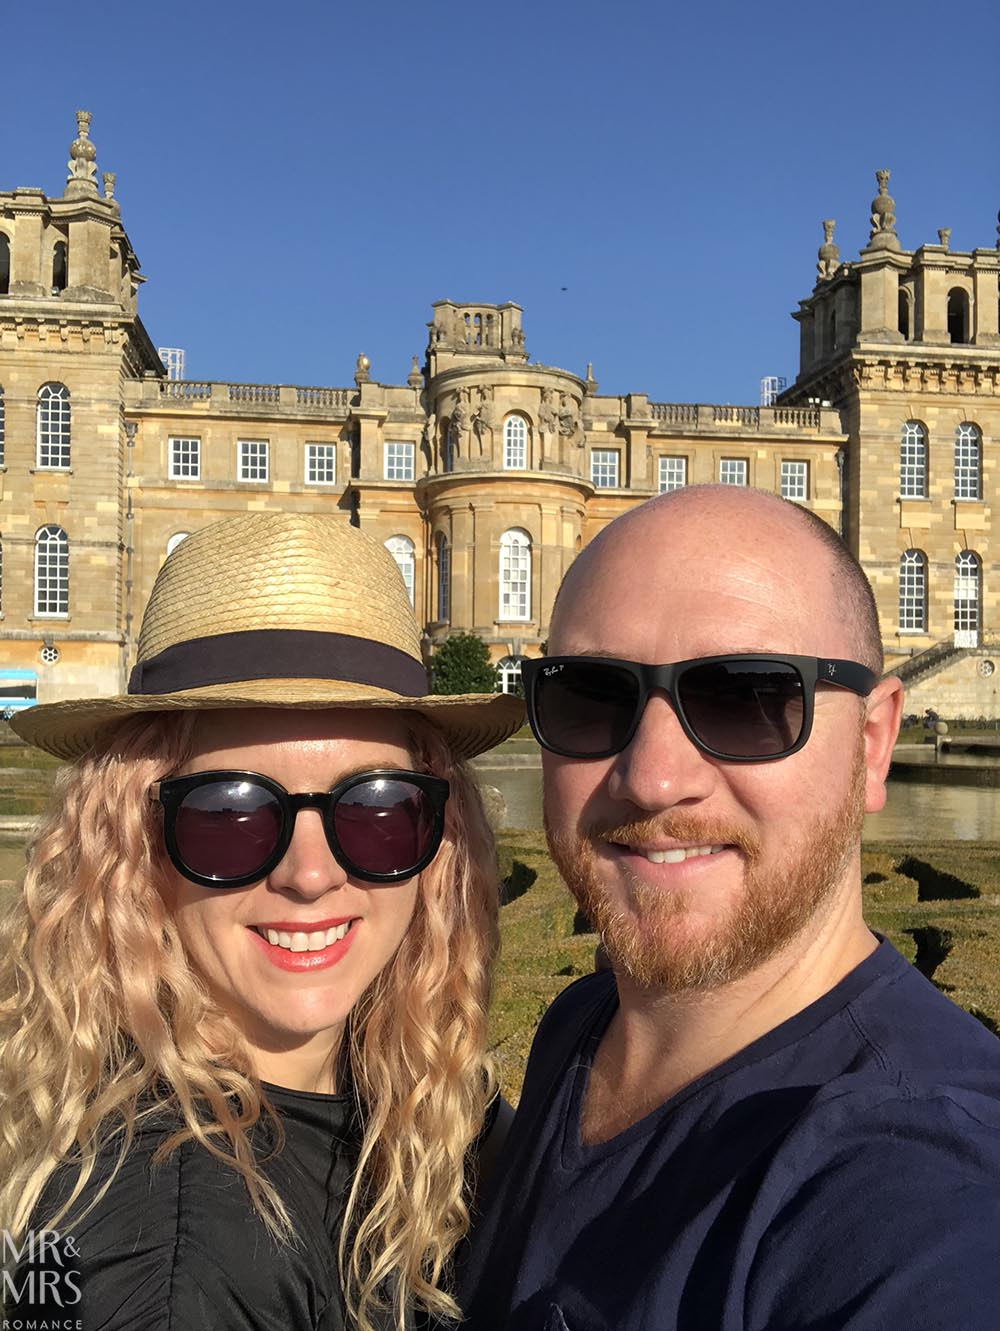 Weekly Edition - Blenheim Palace and us